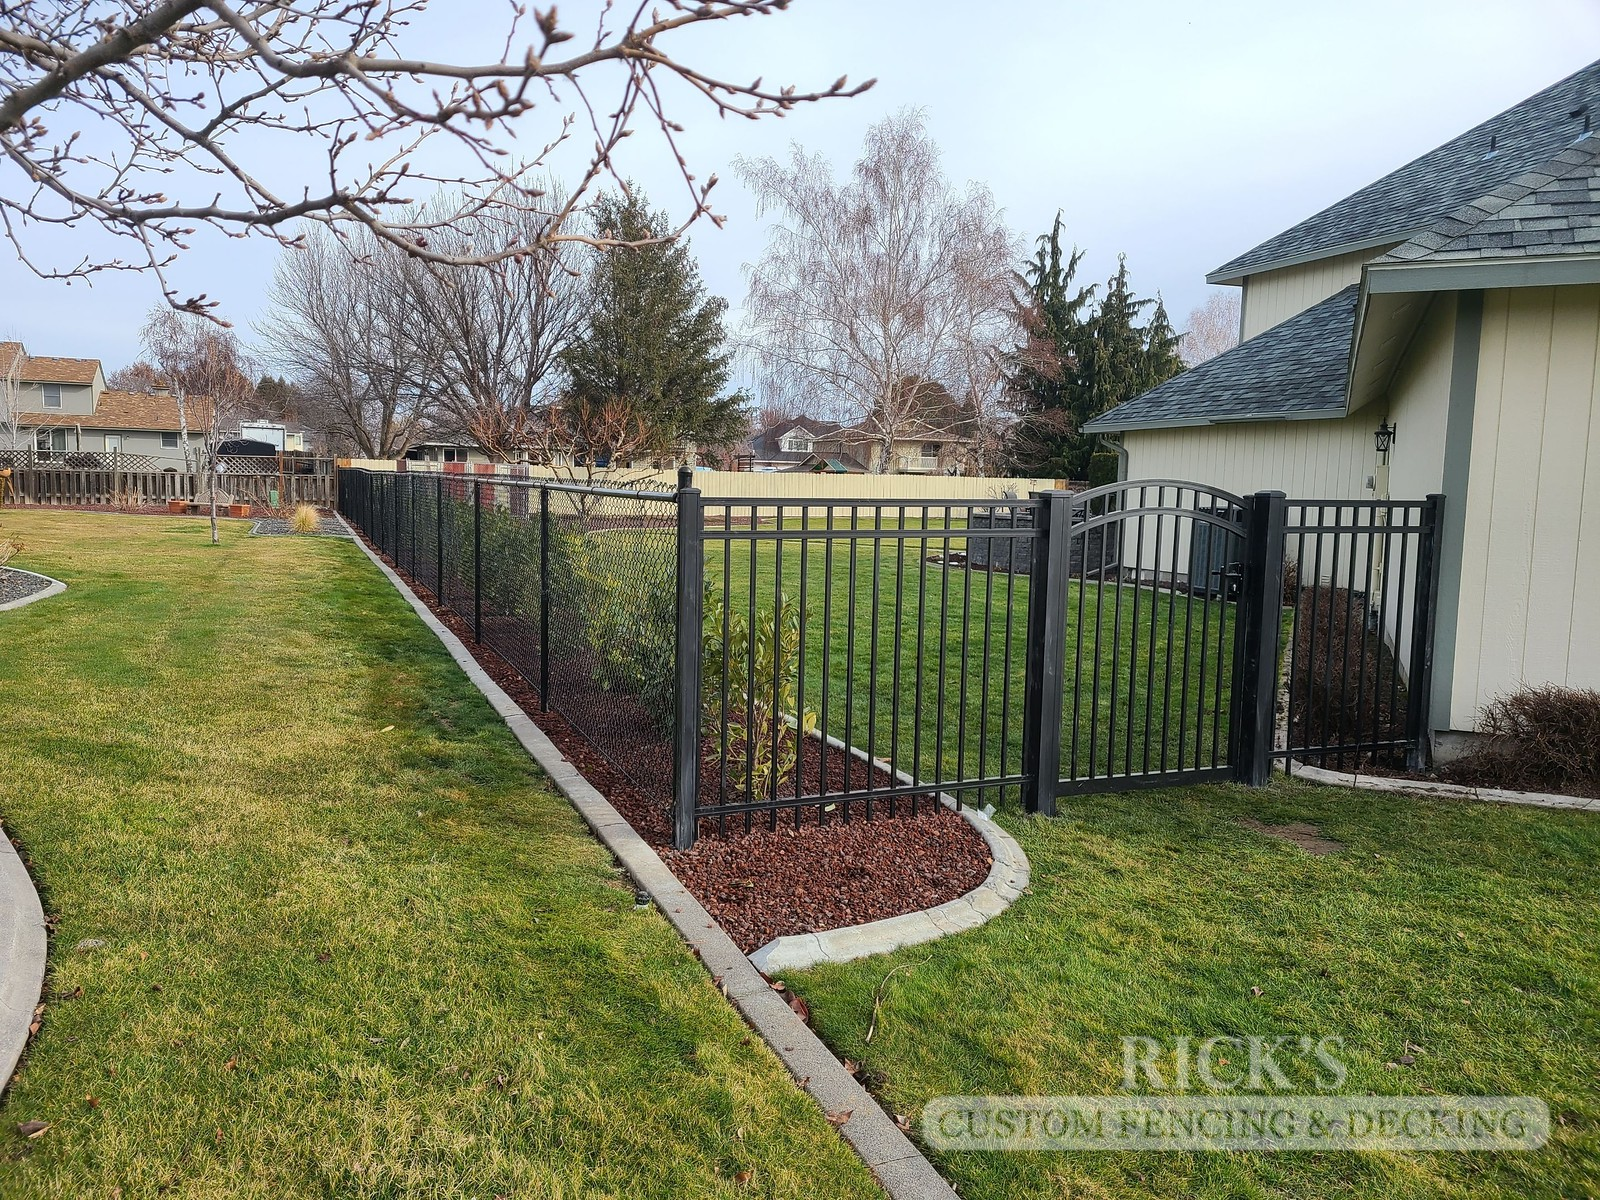 4145 - Black Chain Link Fencing